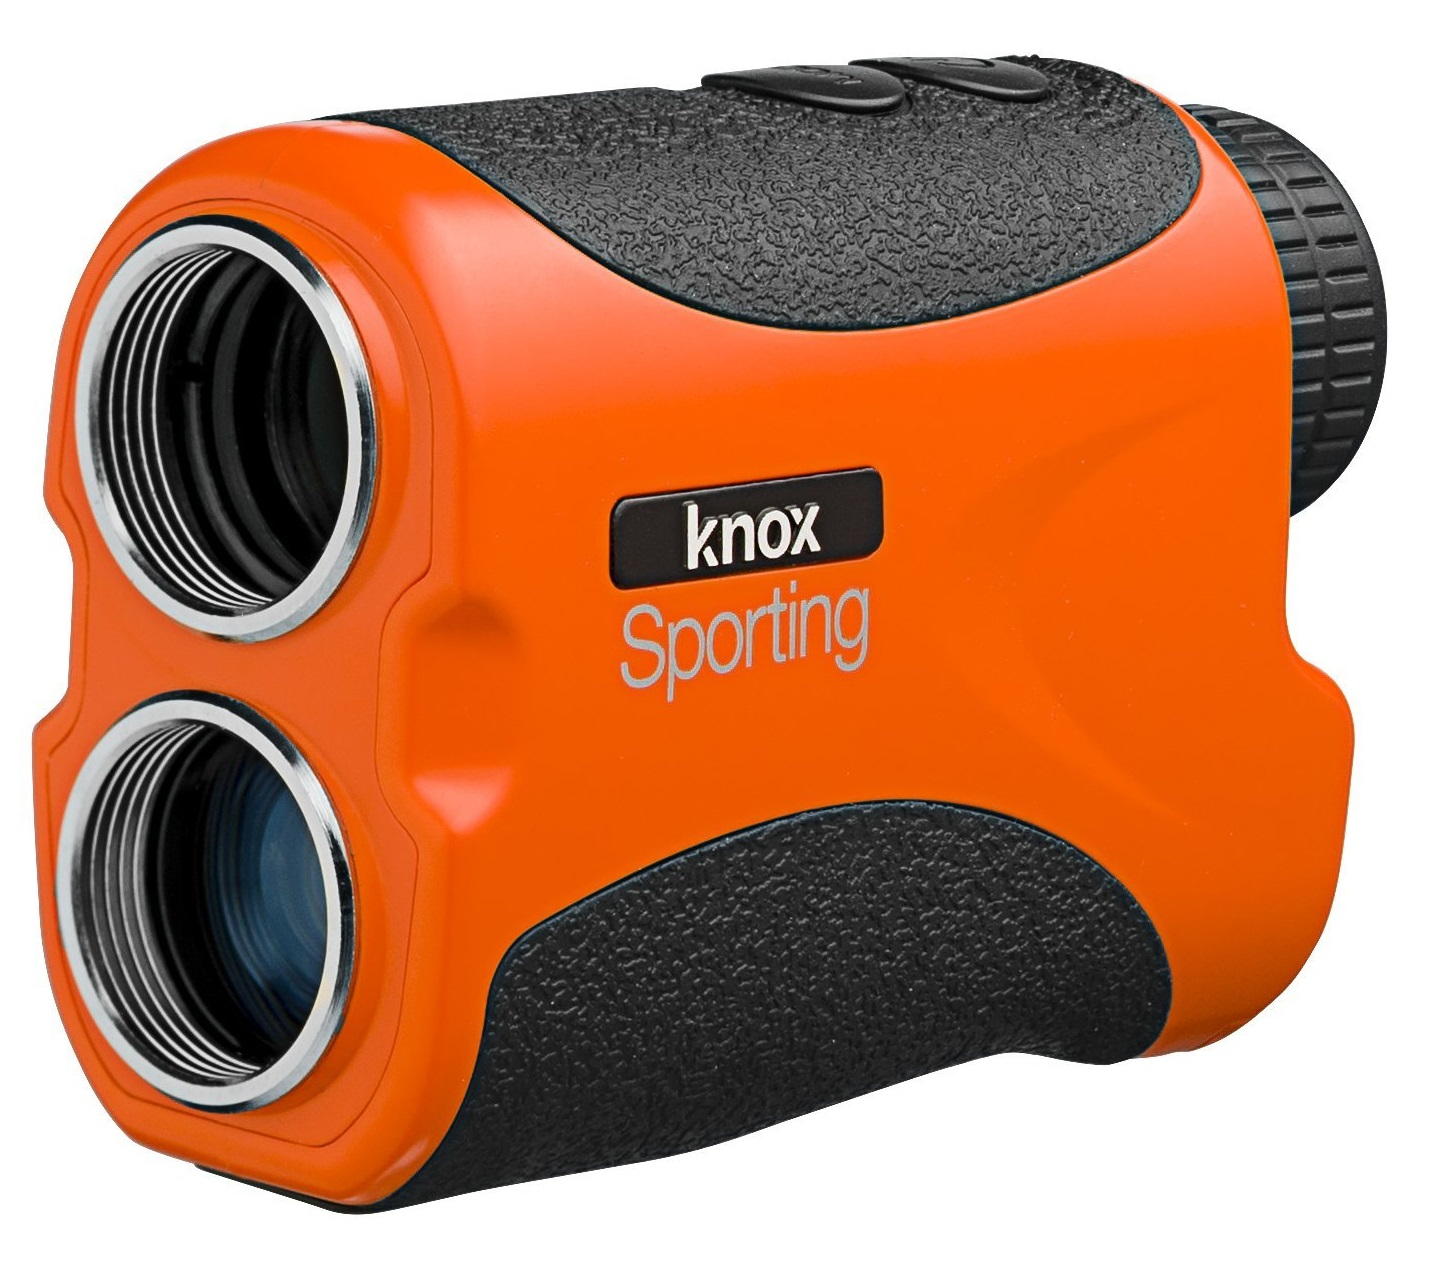 Knox Sporting Golf Laser Rangefinders with Slope